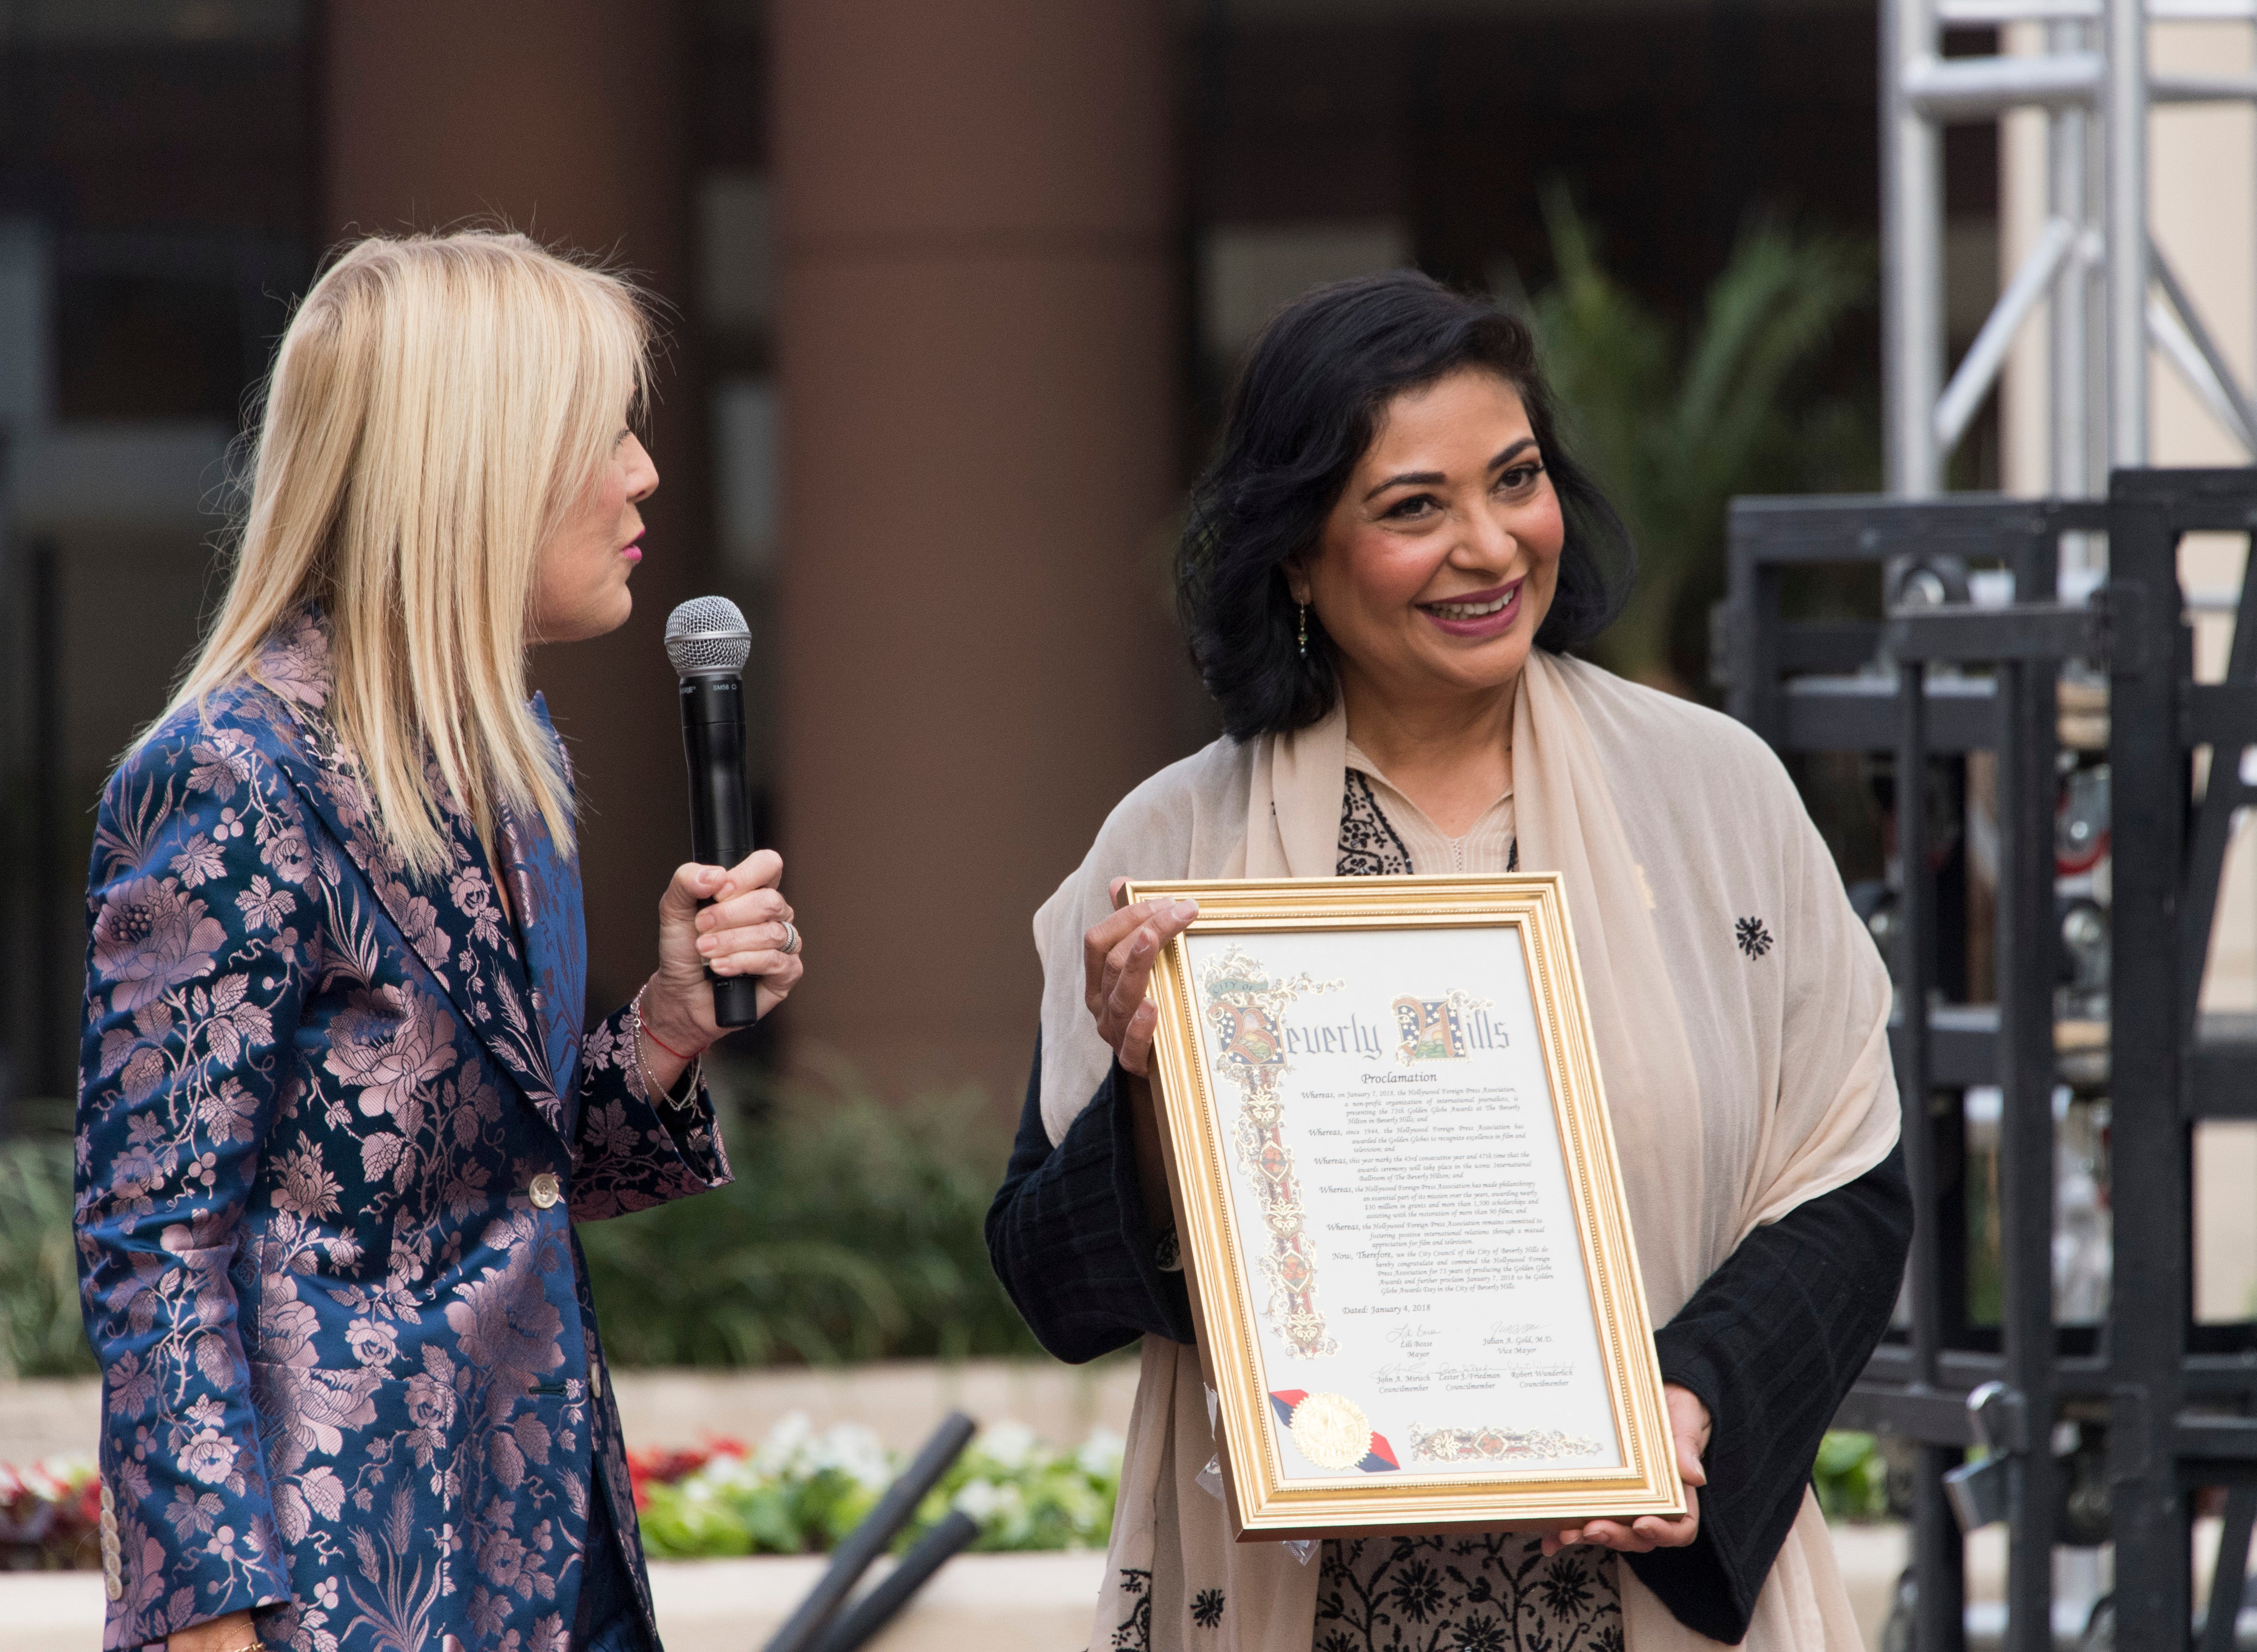 Beverly Hills mayor presents proclamation to HFPA president Meher Tatna